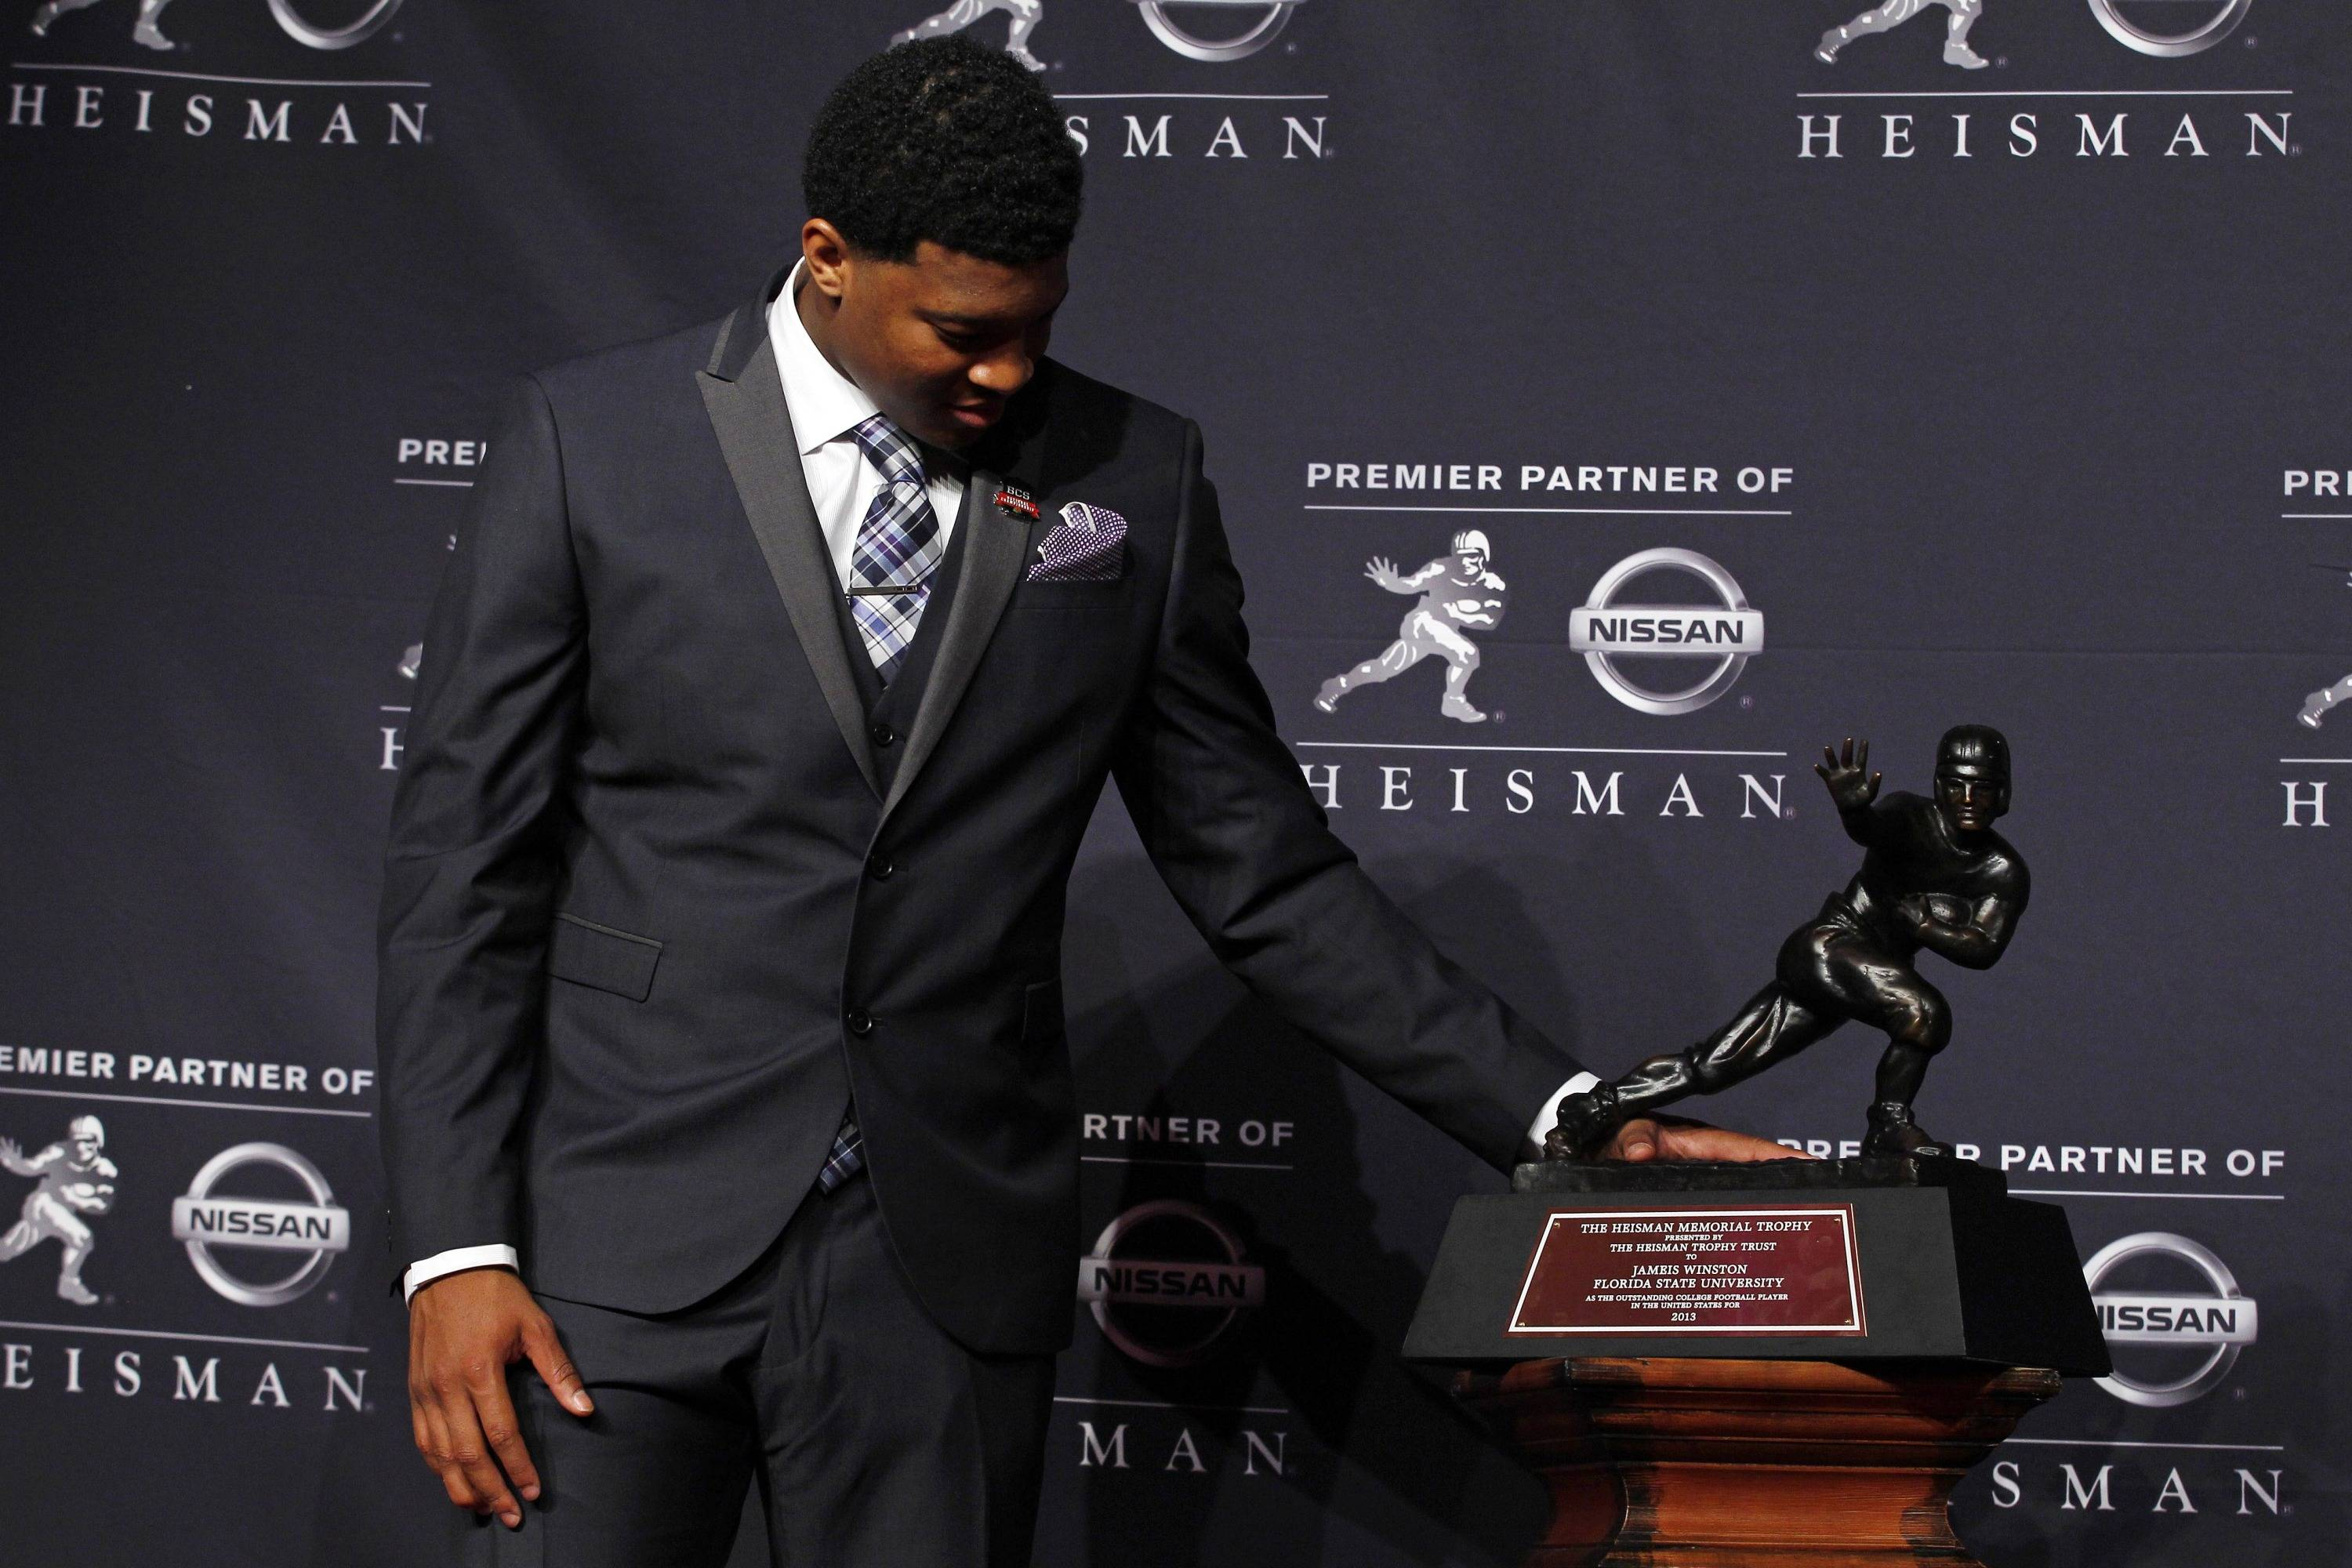 Dec 14, 2013; New York, NY, USA; Seminoles quarterback Jameis Winston looks at the trophy after being awarded the 2013 Heisman Trophy. Adam Hunger-USA TODAY Sports